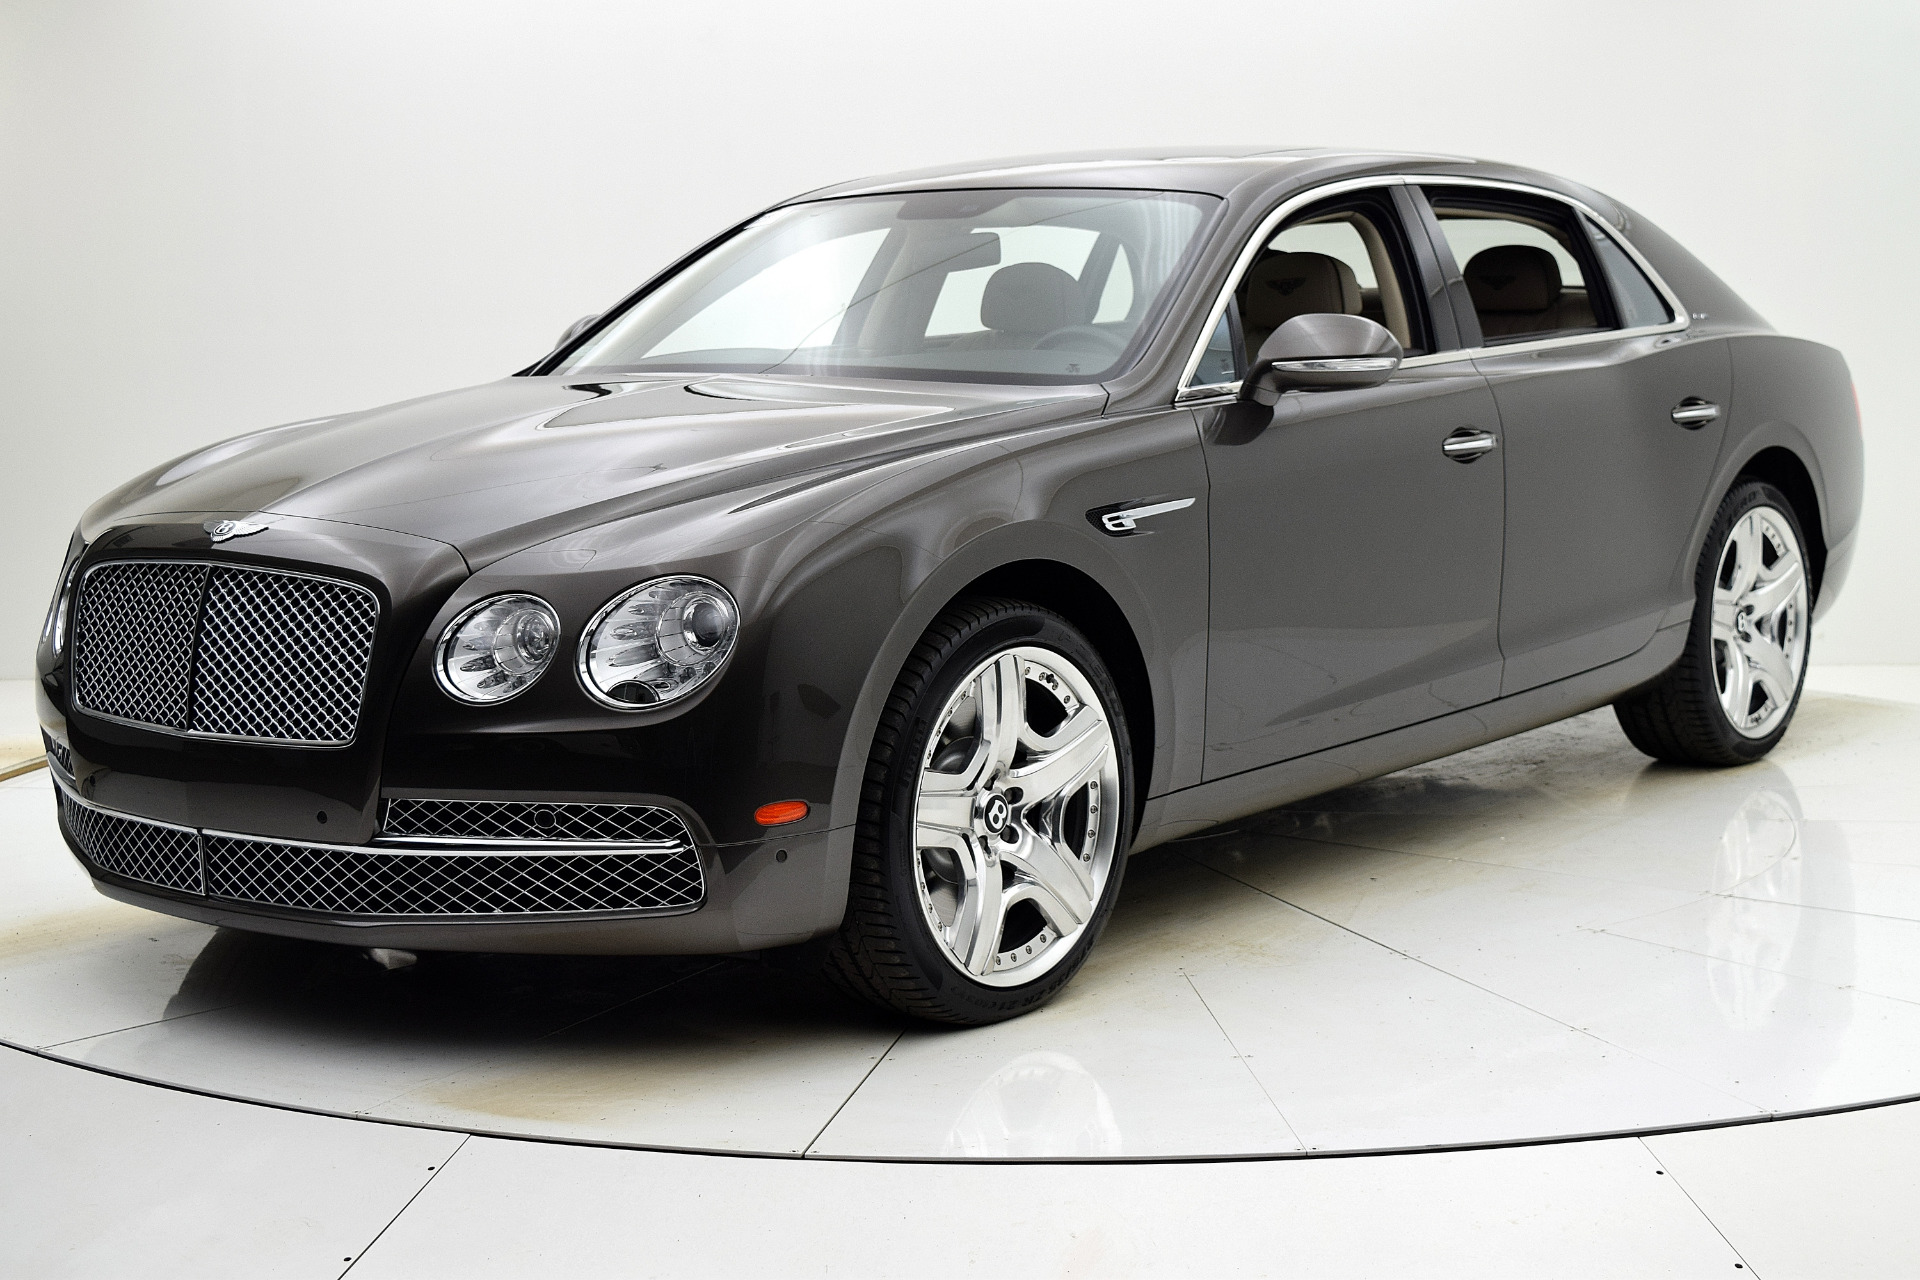 Used 2014 Bentley Flying Spur W12 for sale Sold at Bentley Palmyra N.J. in Palmyra NJ 08065 2